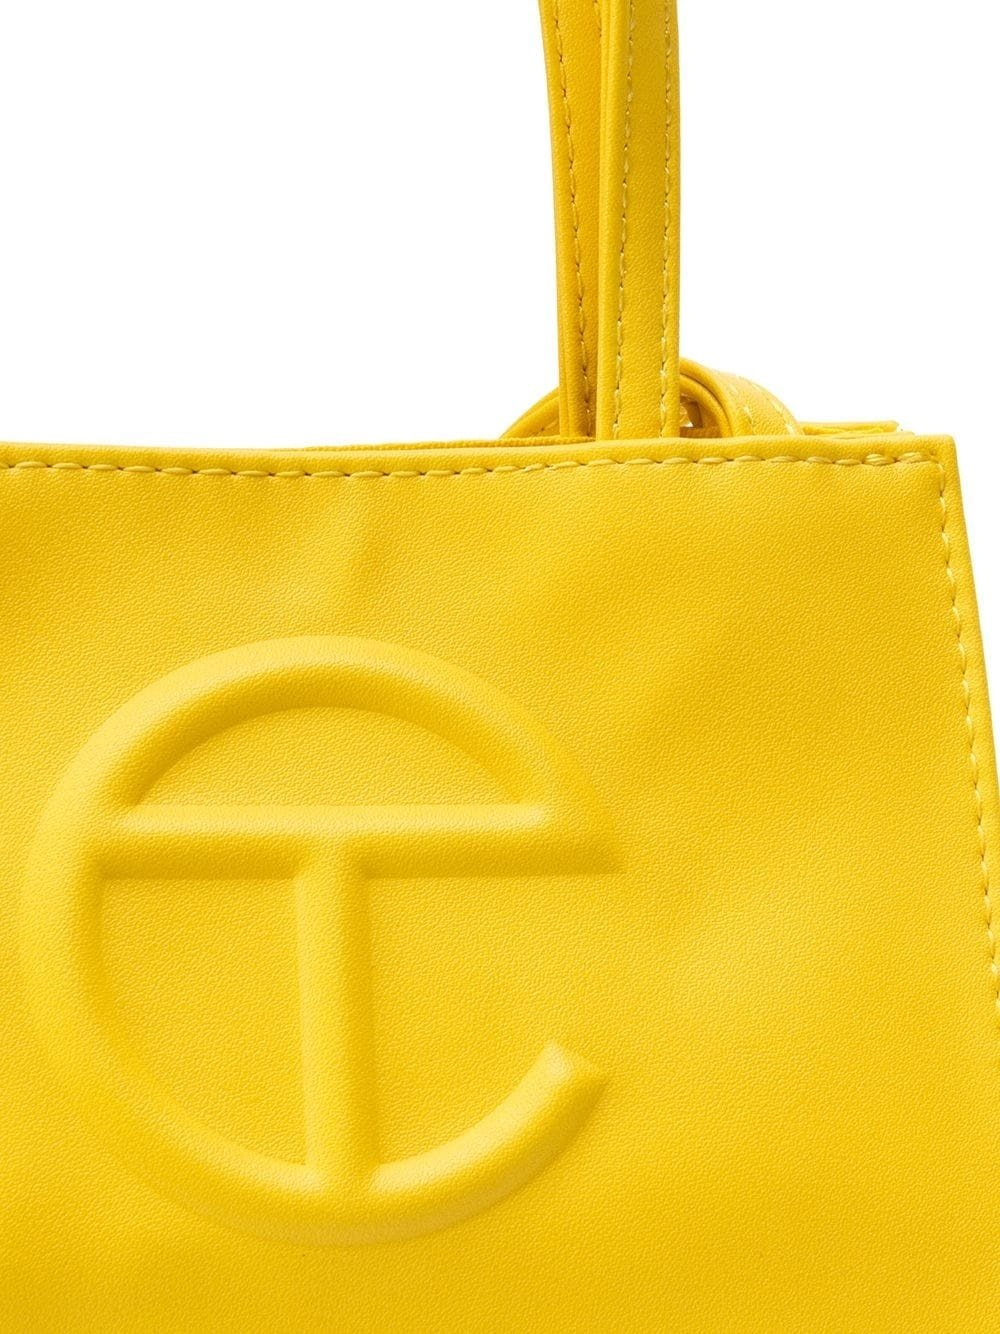 Yellow Telfar single shoulder strap tote bag with embossed front logo